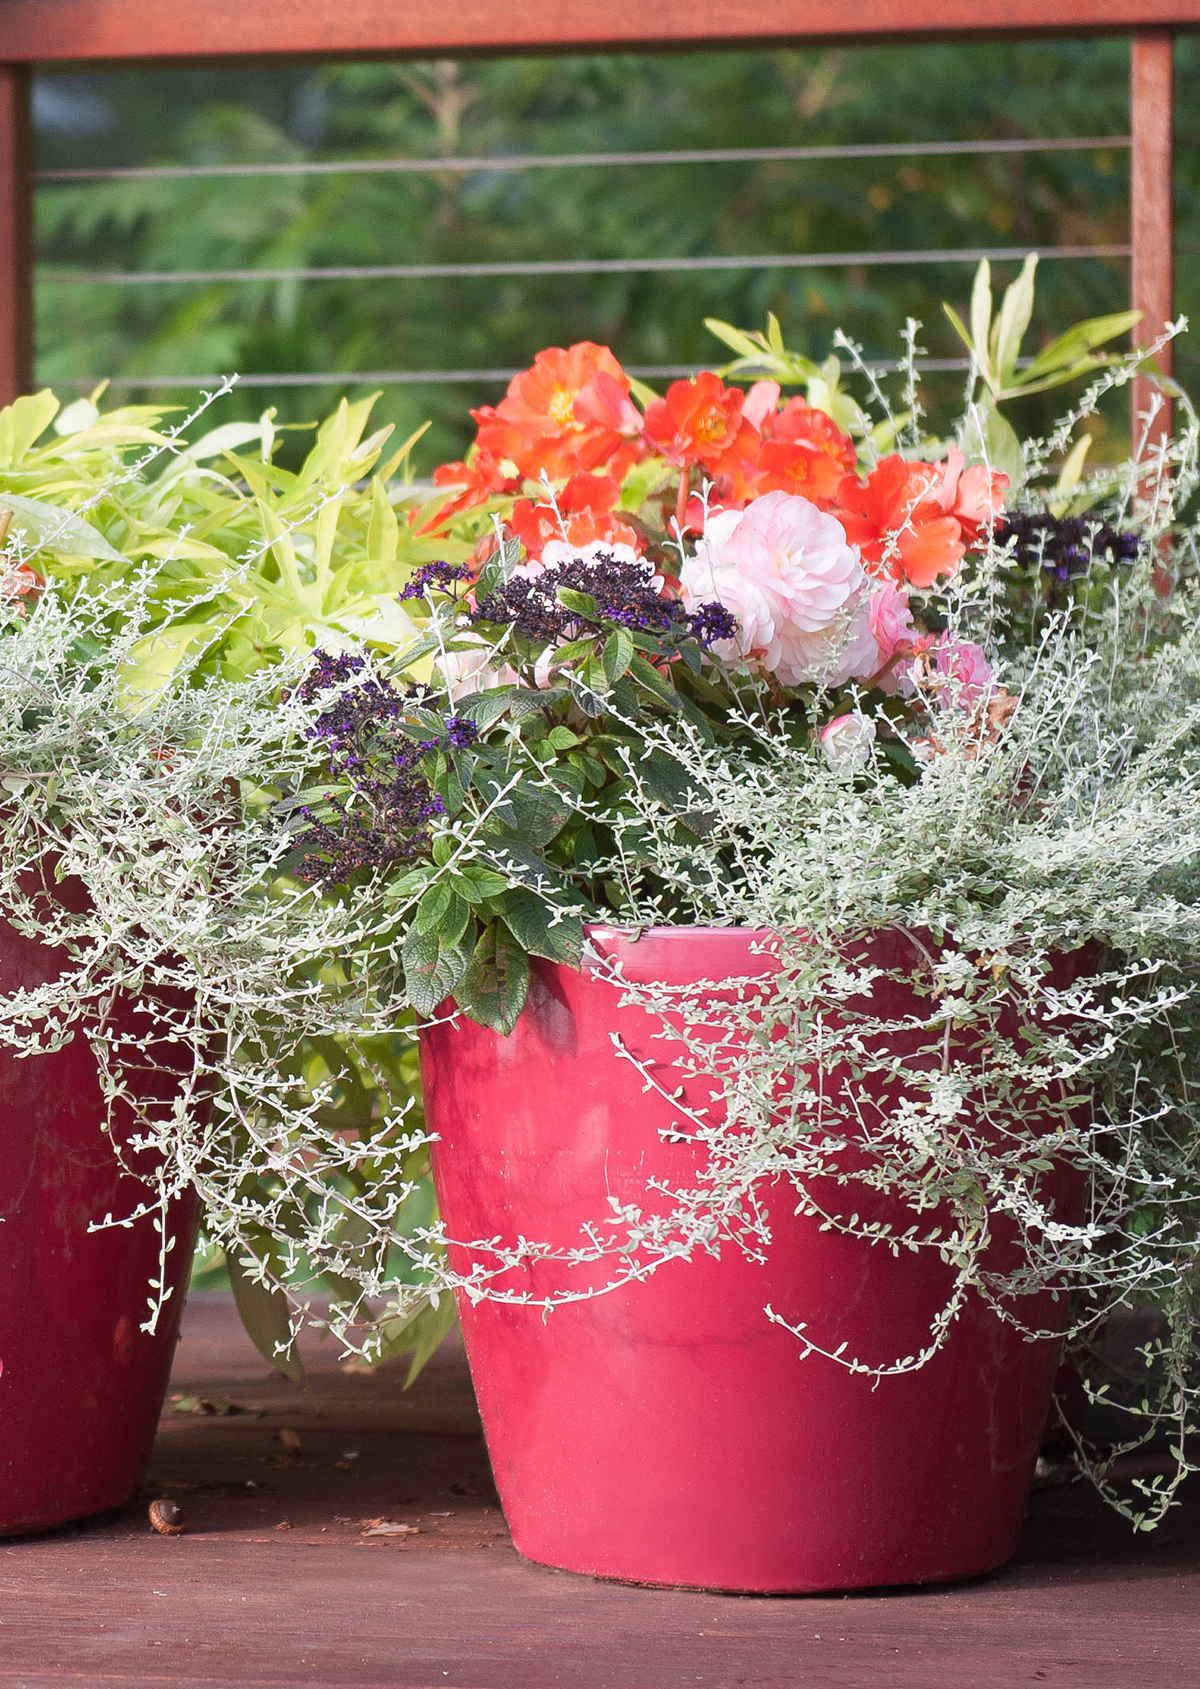 home-outside-planter-design-container-planting-seasonal-pot-part-sun-begonia-heliotrope-licorice-ipomoea-glossy-red-pot-wire-railing-deck